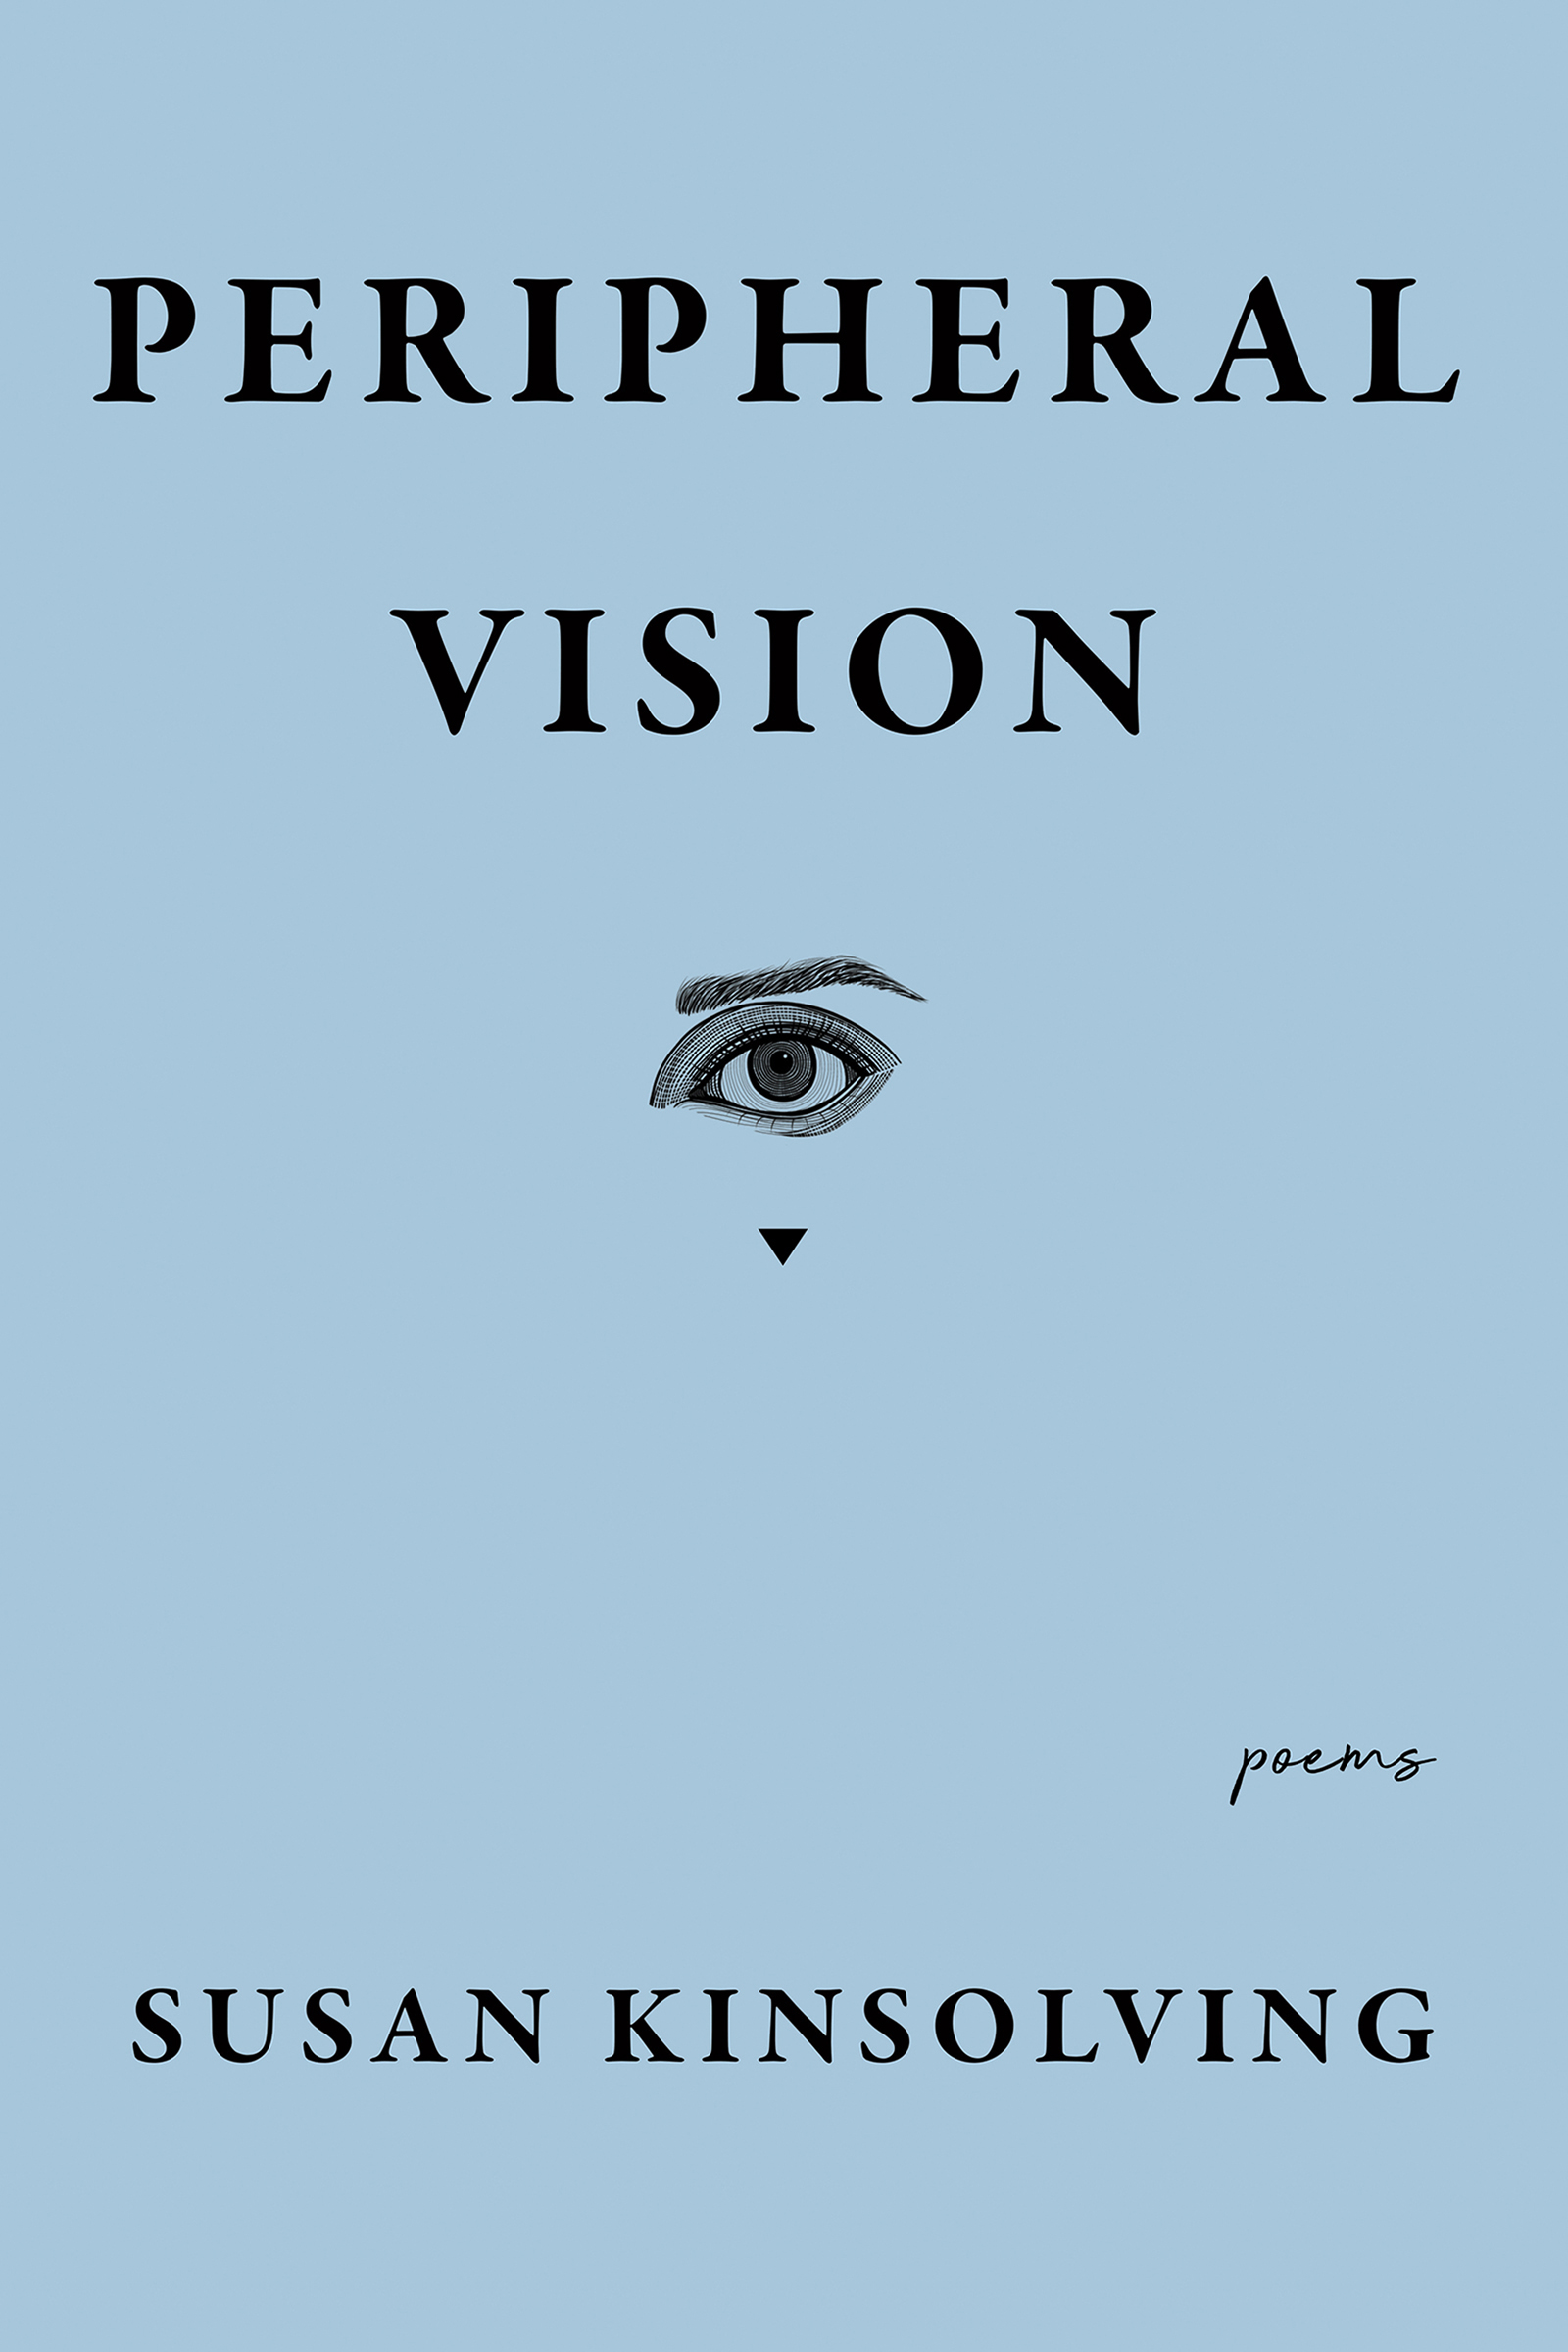 A blue background with a small drawing of an eye at the center and black script that reads Peripheral Vision poems by Susan Kinsolving.